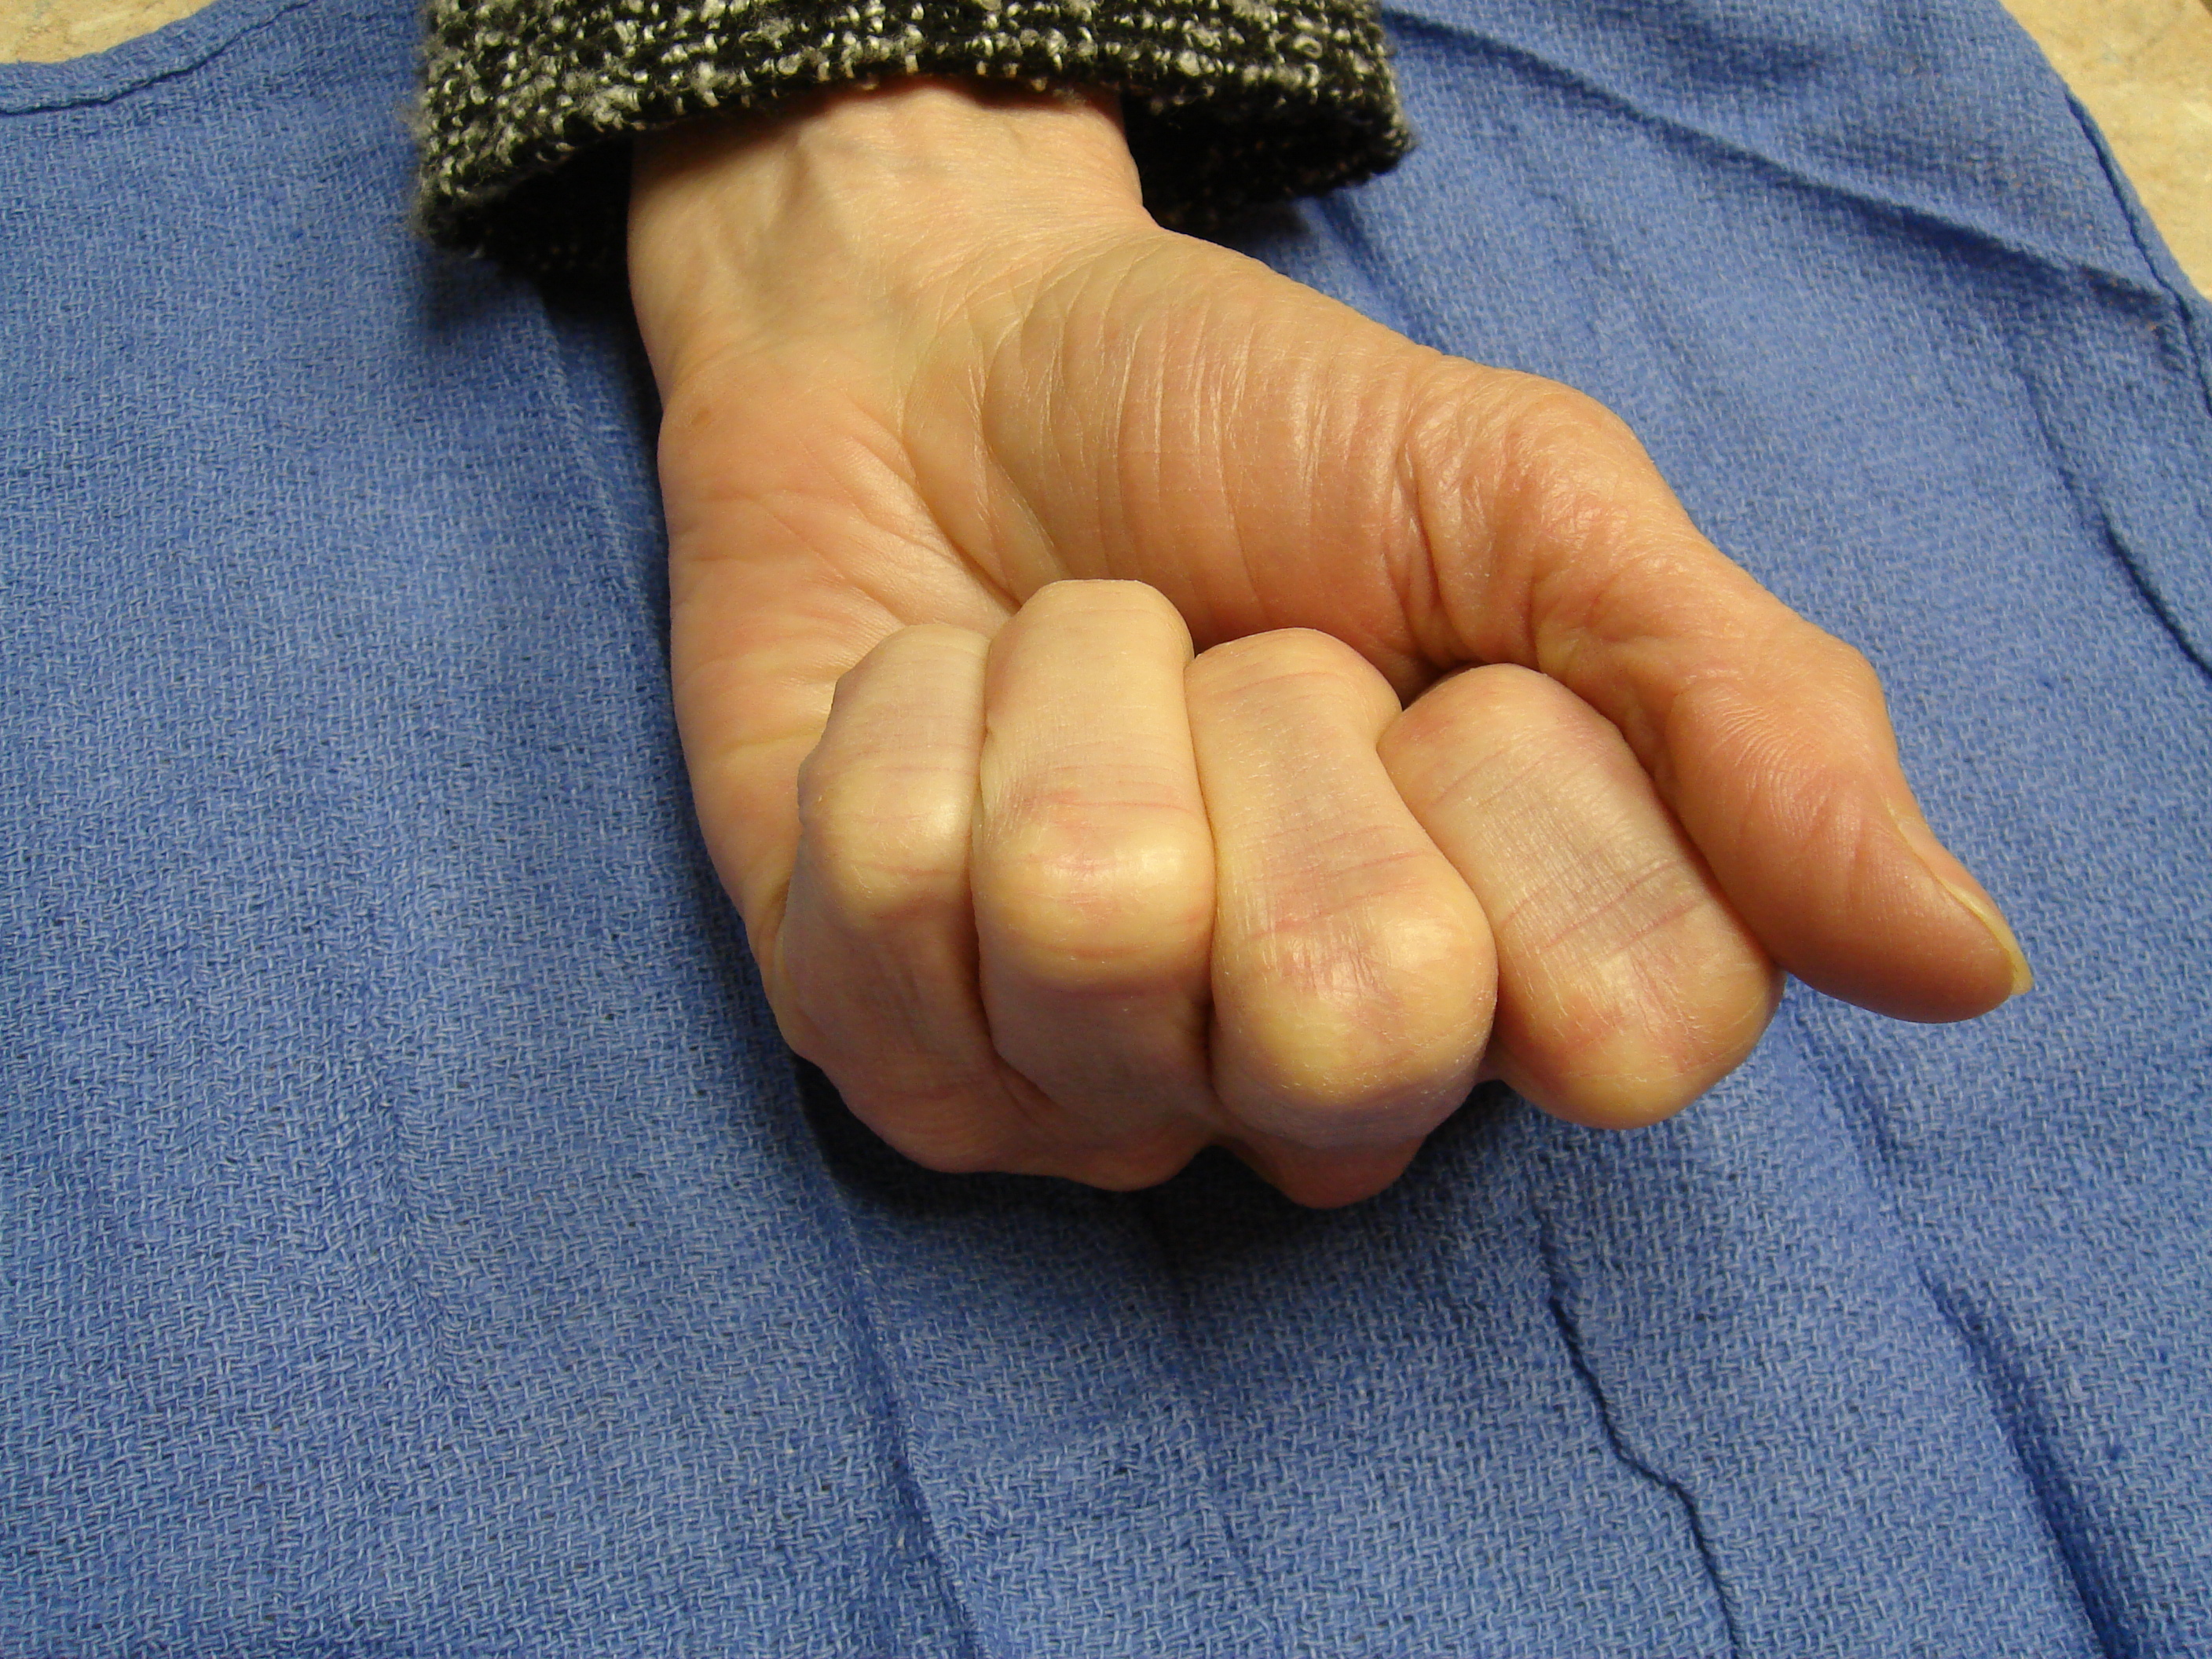 Figure 1i: These photographs illustrate the patient's hand 6 months after the second enzyme treatment cycle (for the fourth ray) and 15 months.